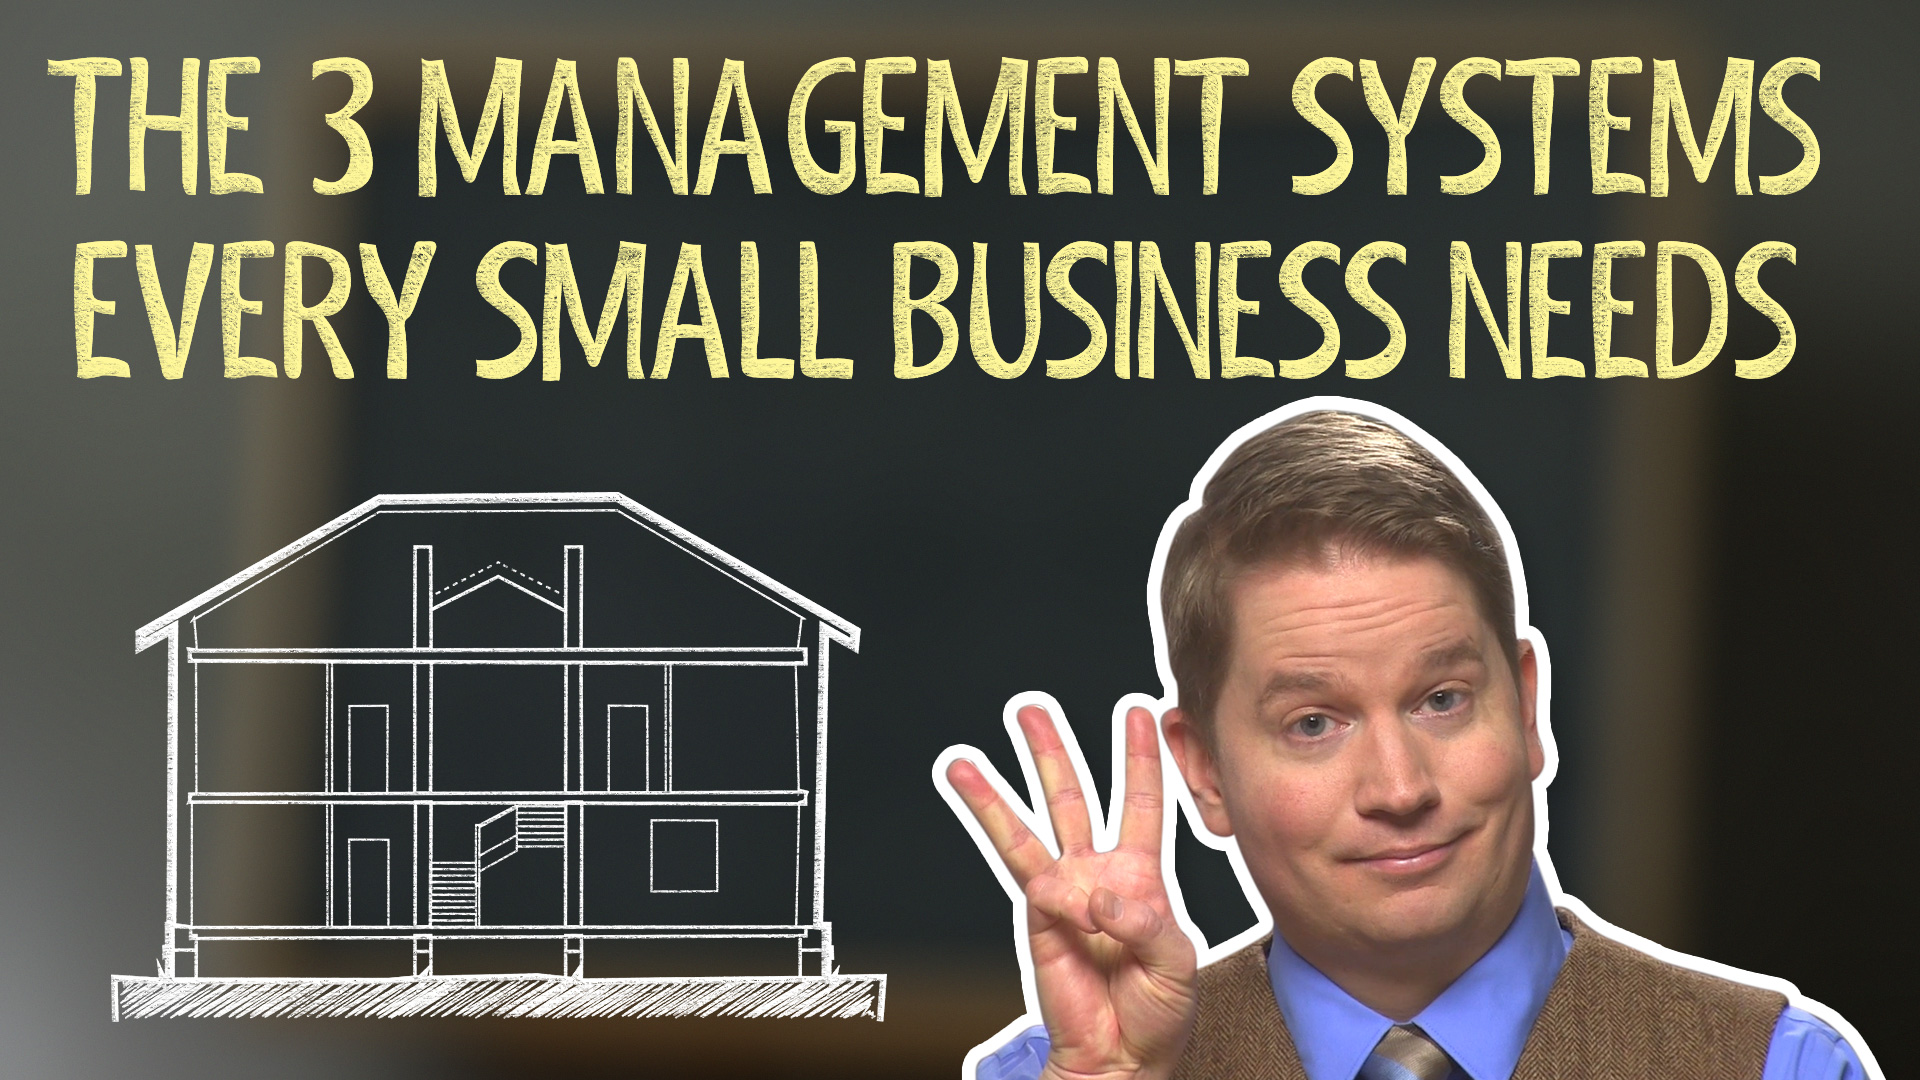 How to Set Up Management Systems for Your Small Business